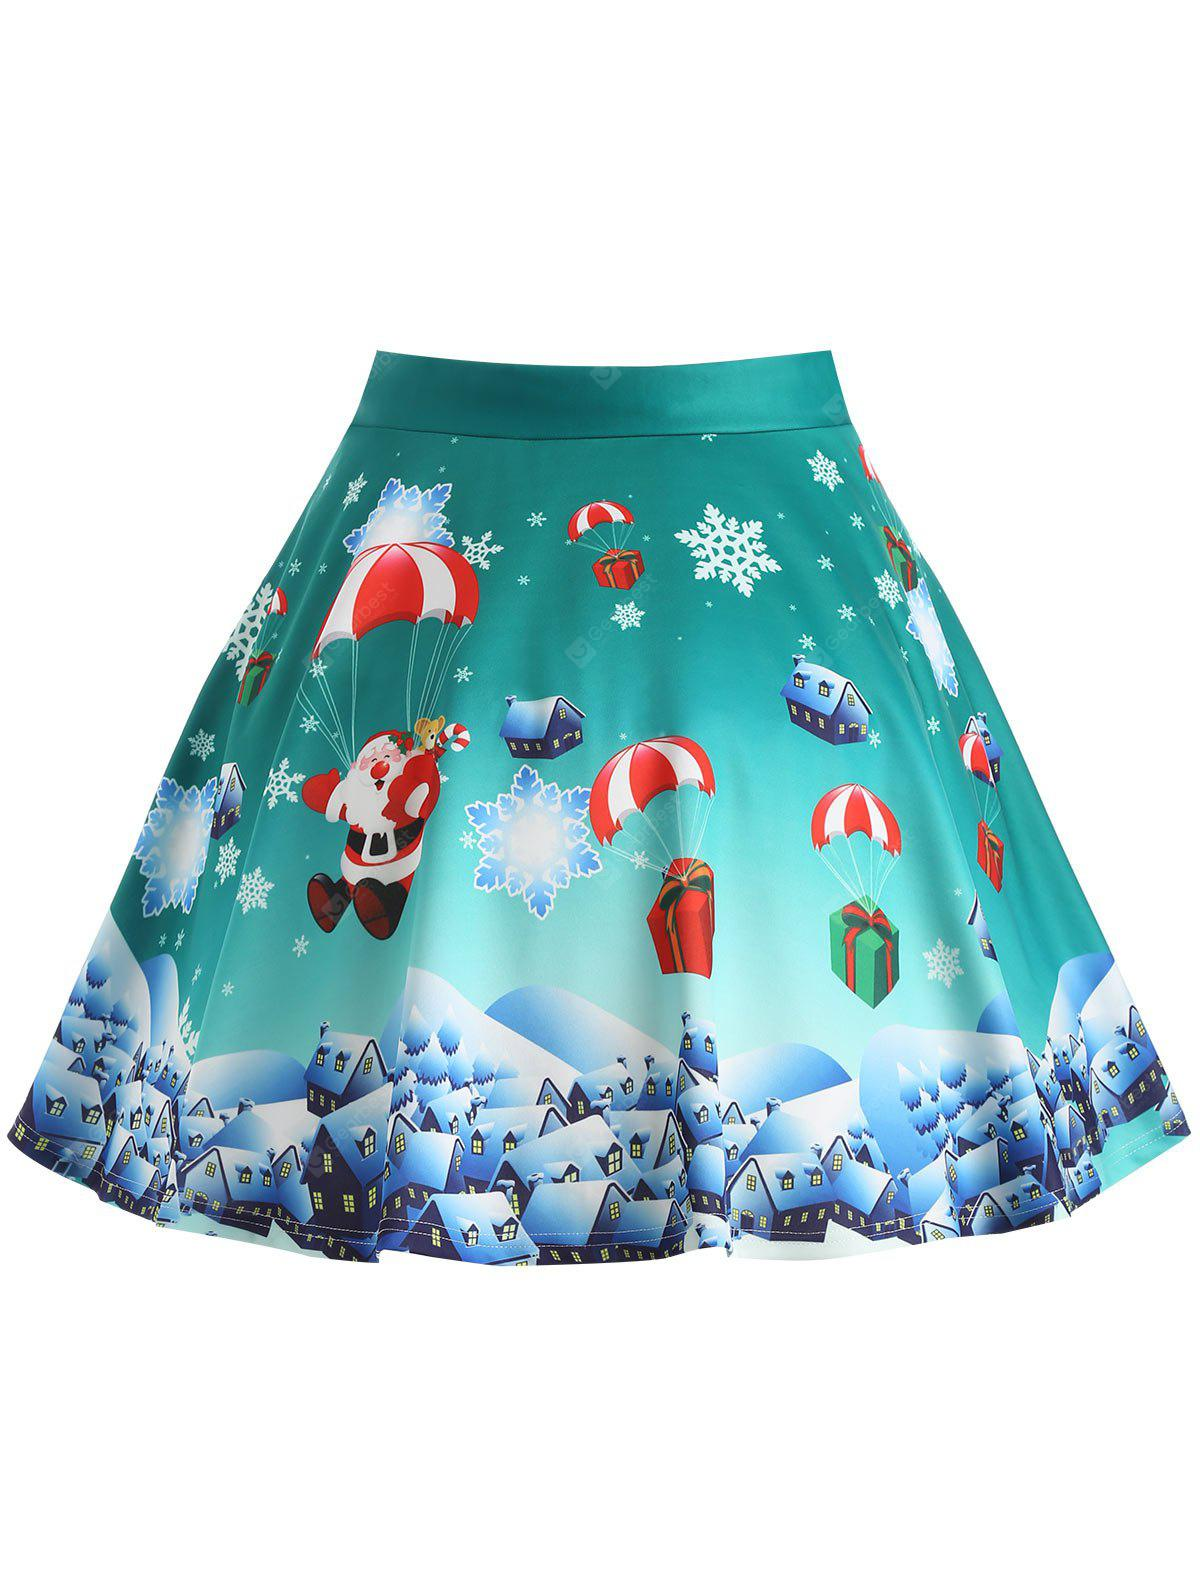 Christmas Gift Santa Claus Print Plus Size Skirt -  27.85 Free ... cee47a3f9af8